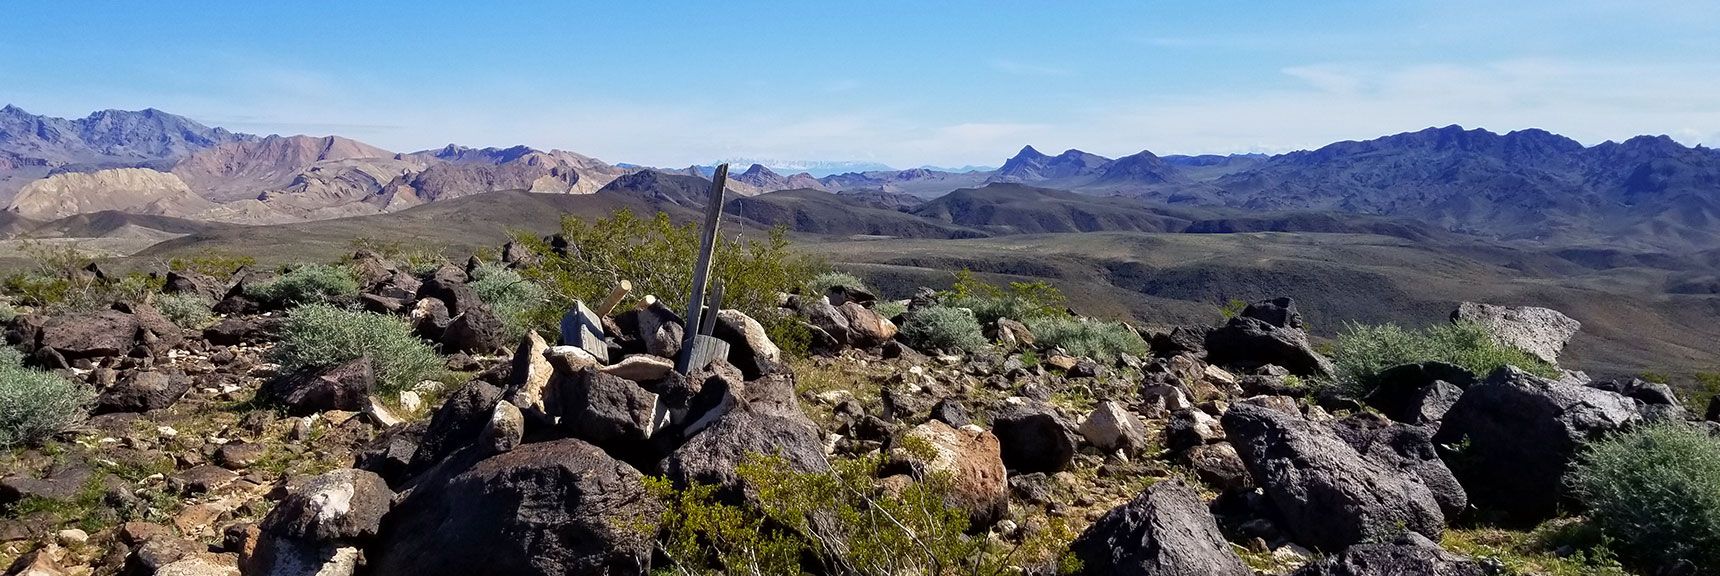 View Toward Jimbilnan Wilderness and Muddy Mountains from Black Mesa in Lake Mead National Recreation Area, Nevada